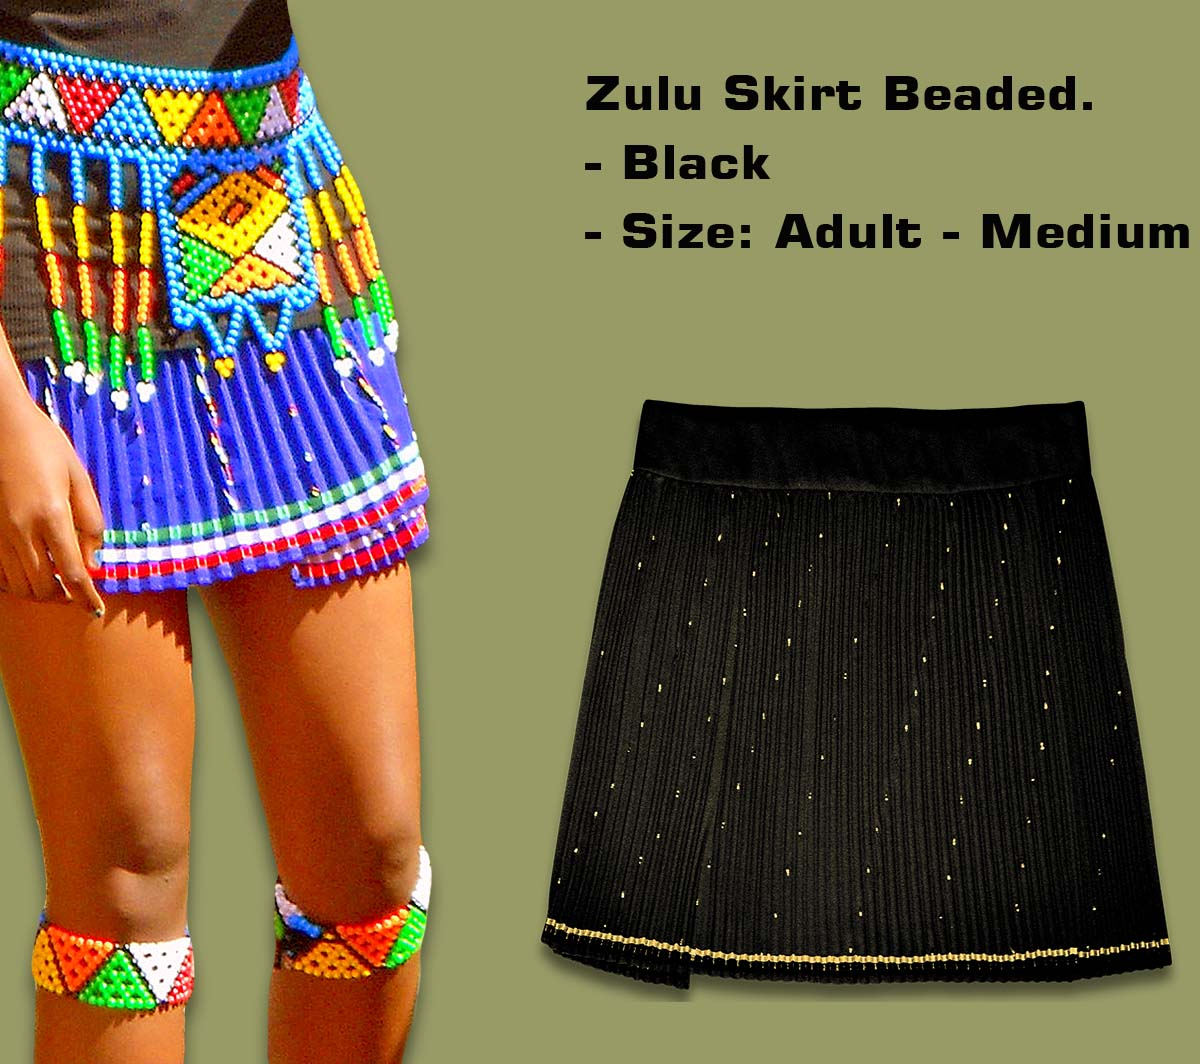 Beaded Zulu Skirt Black Adult Medium